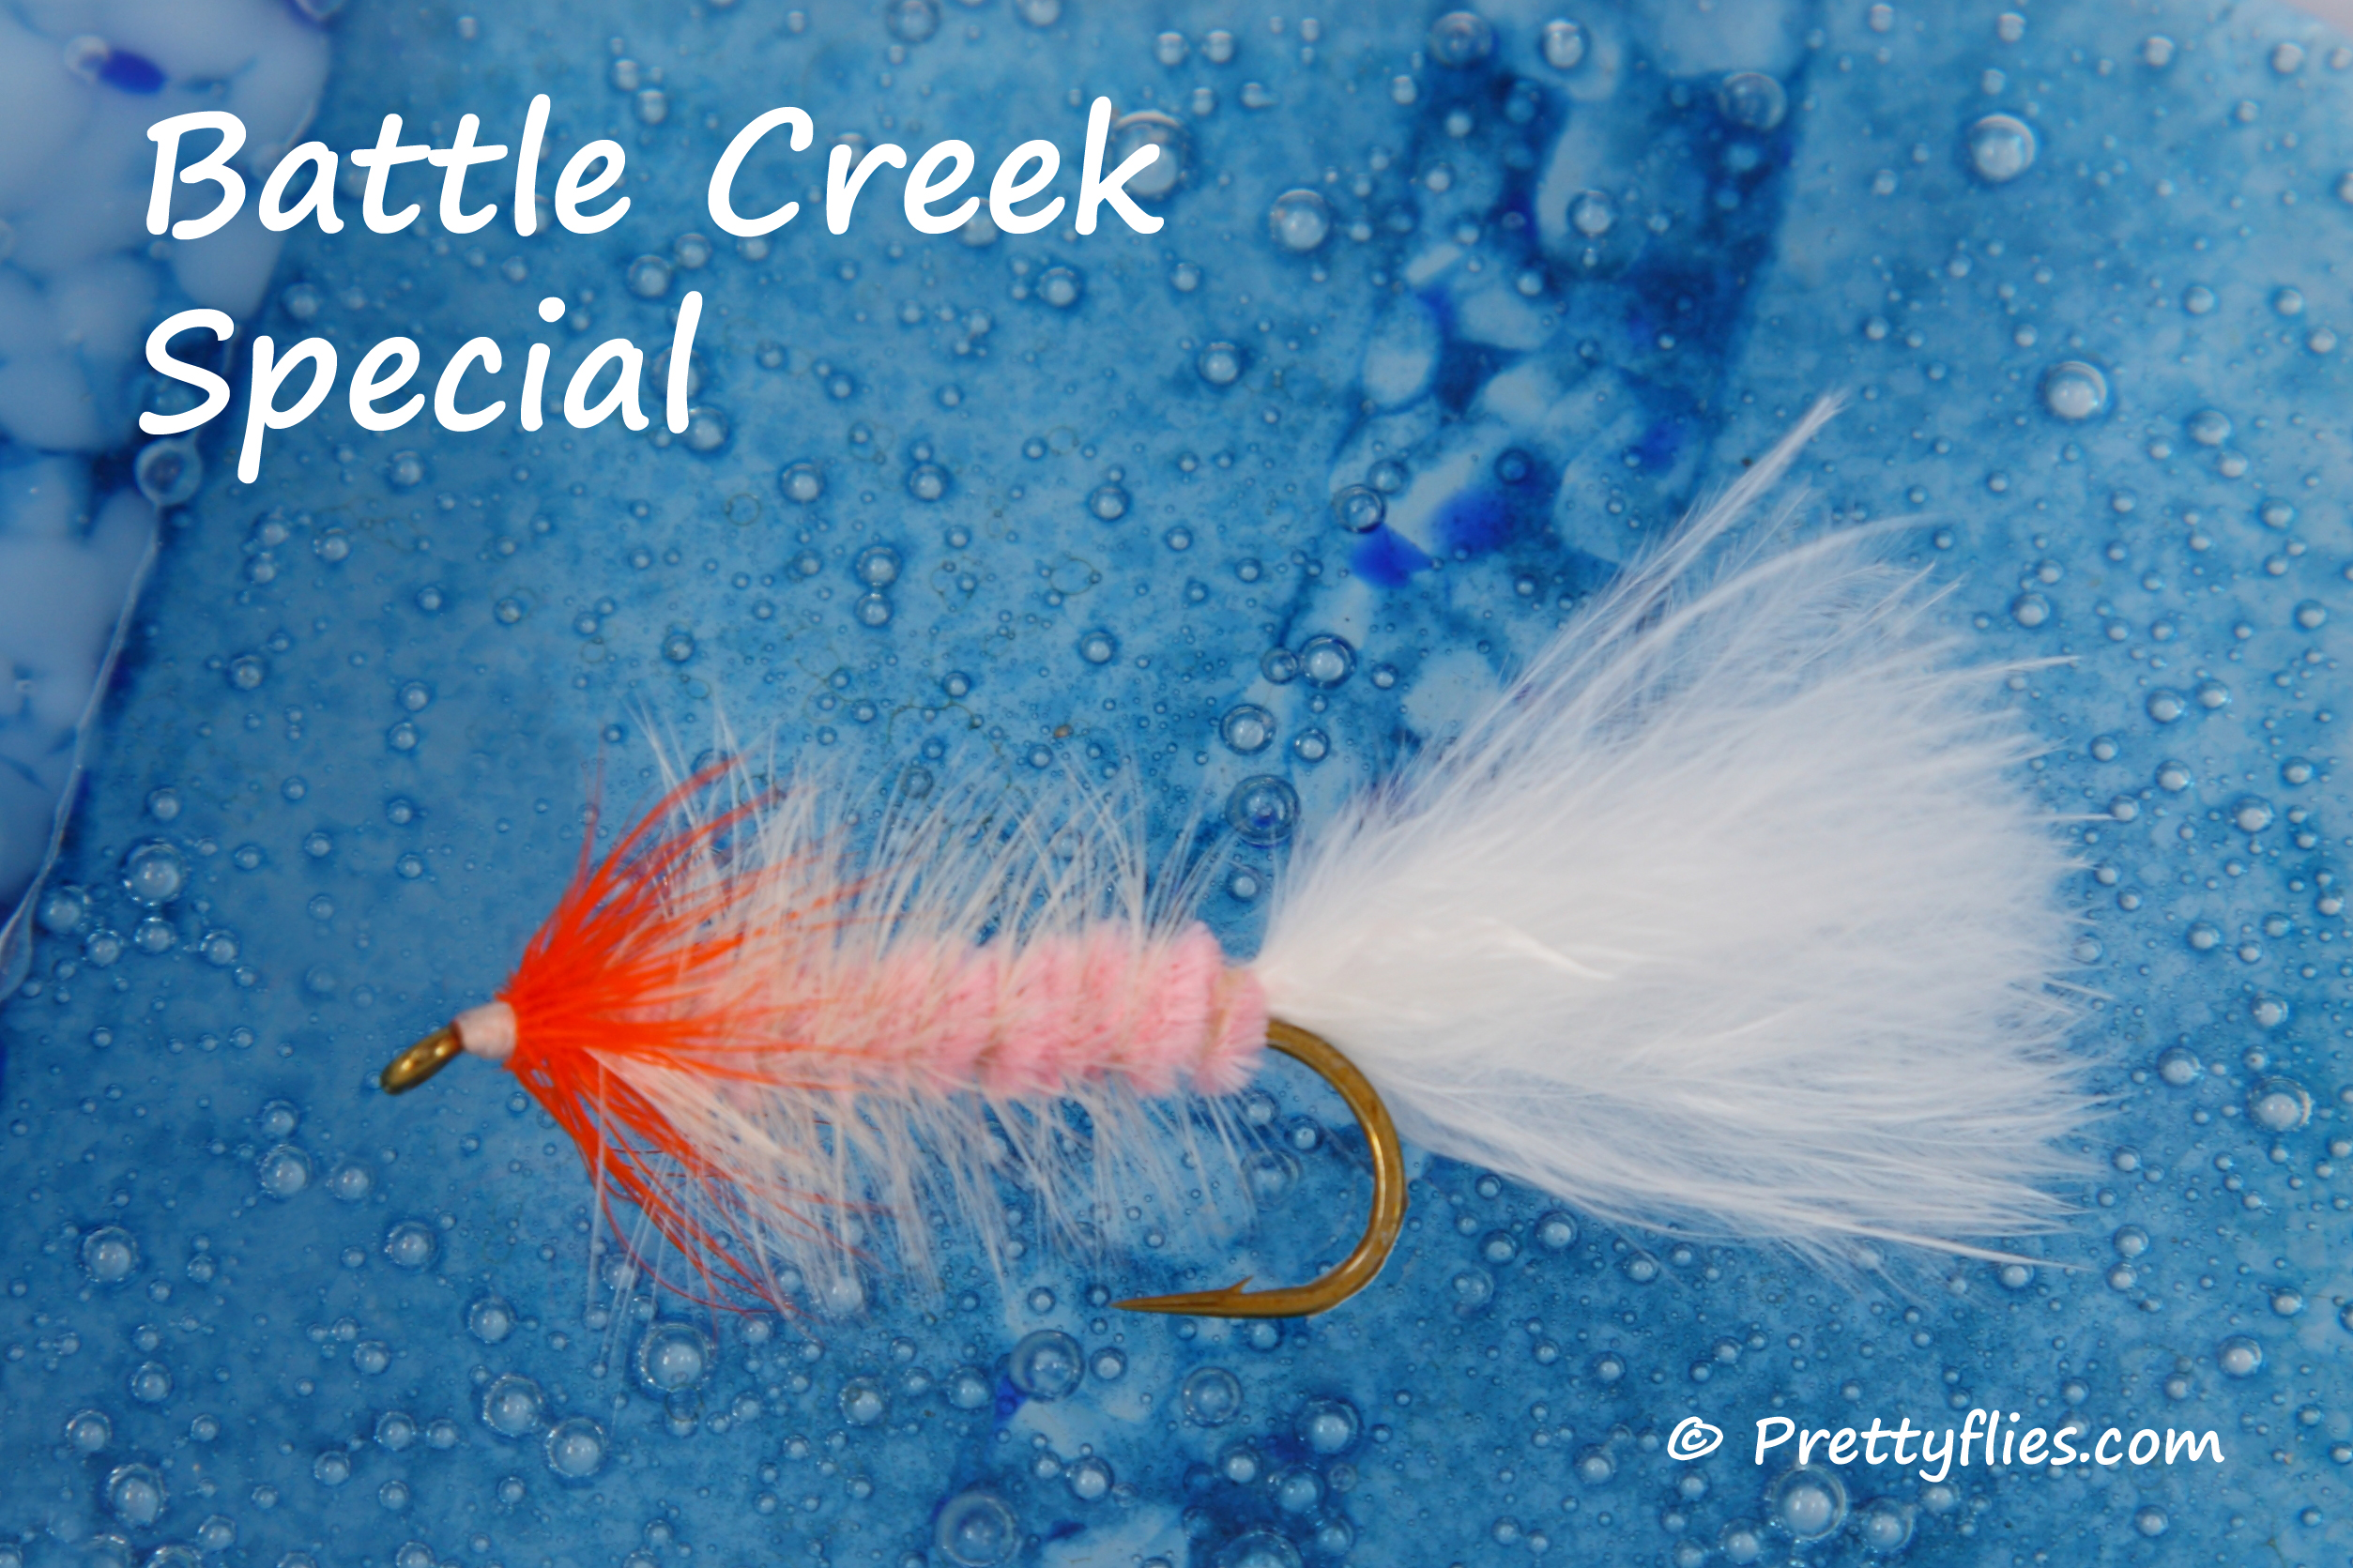 Battle Creek Special copy.jpg